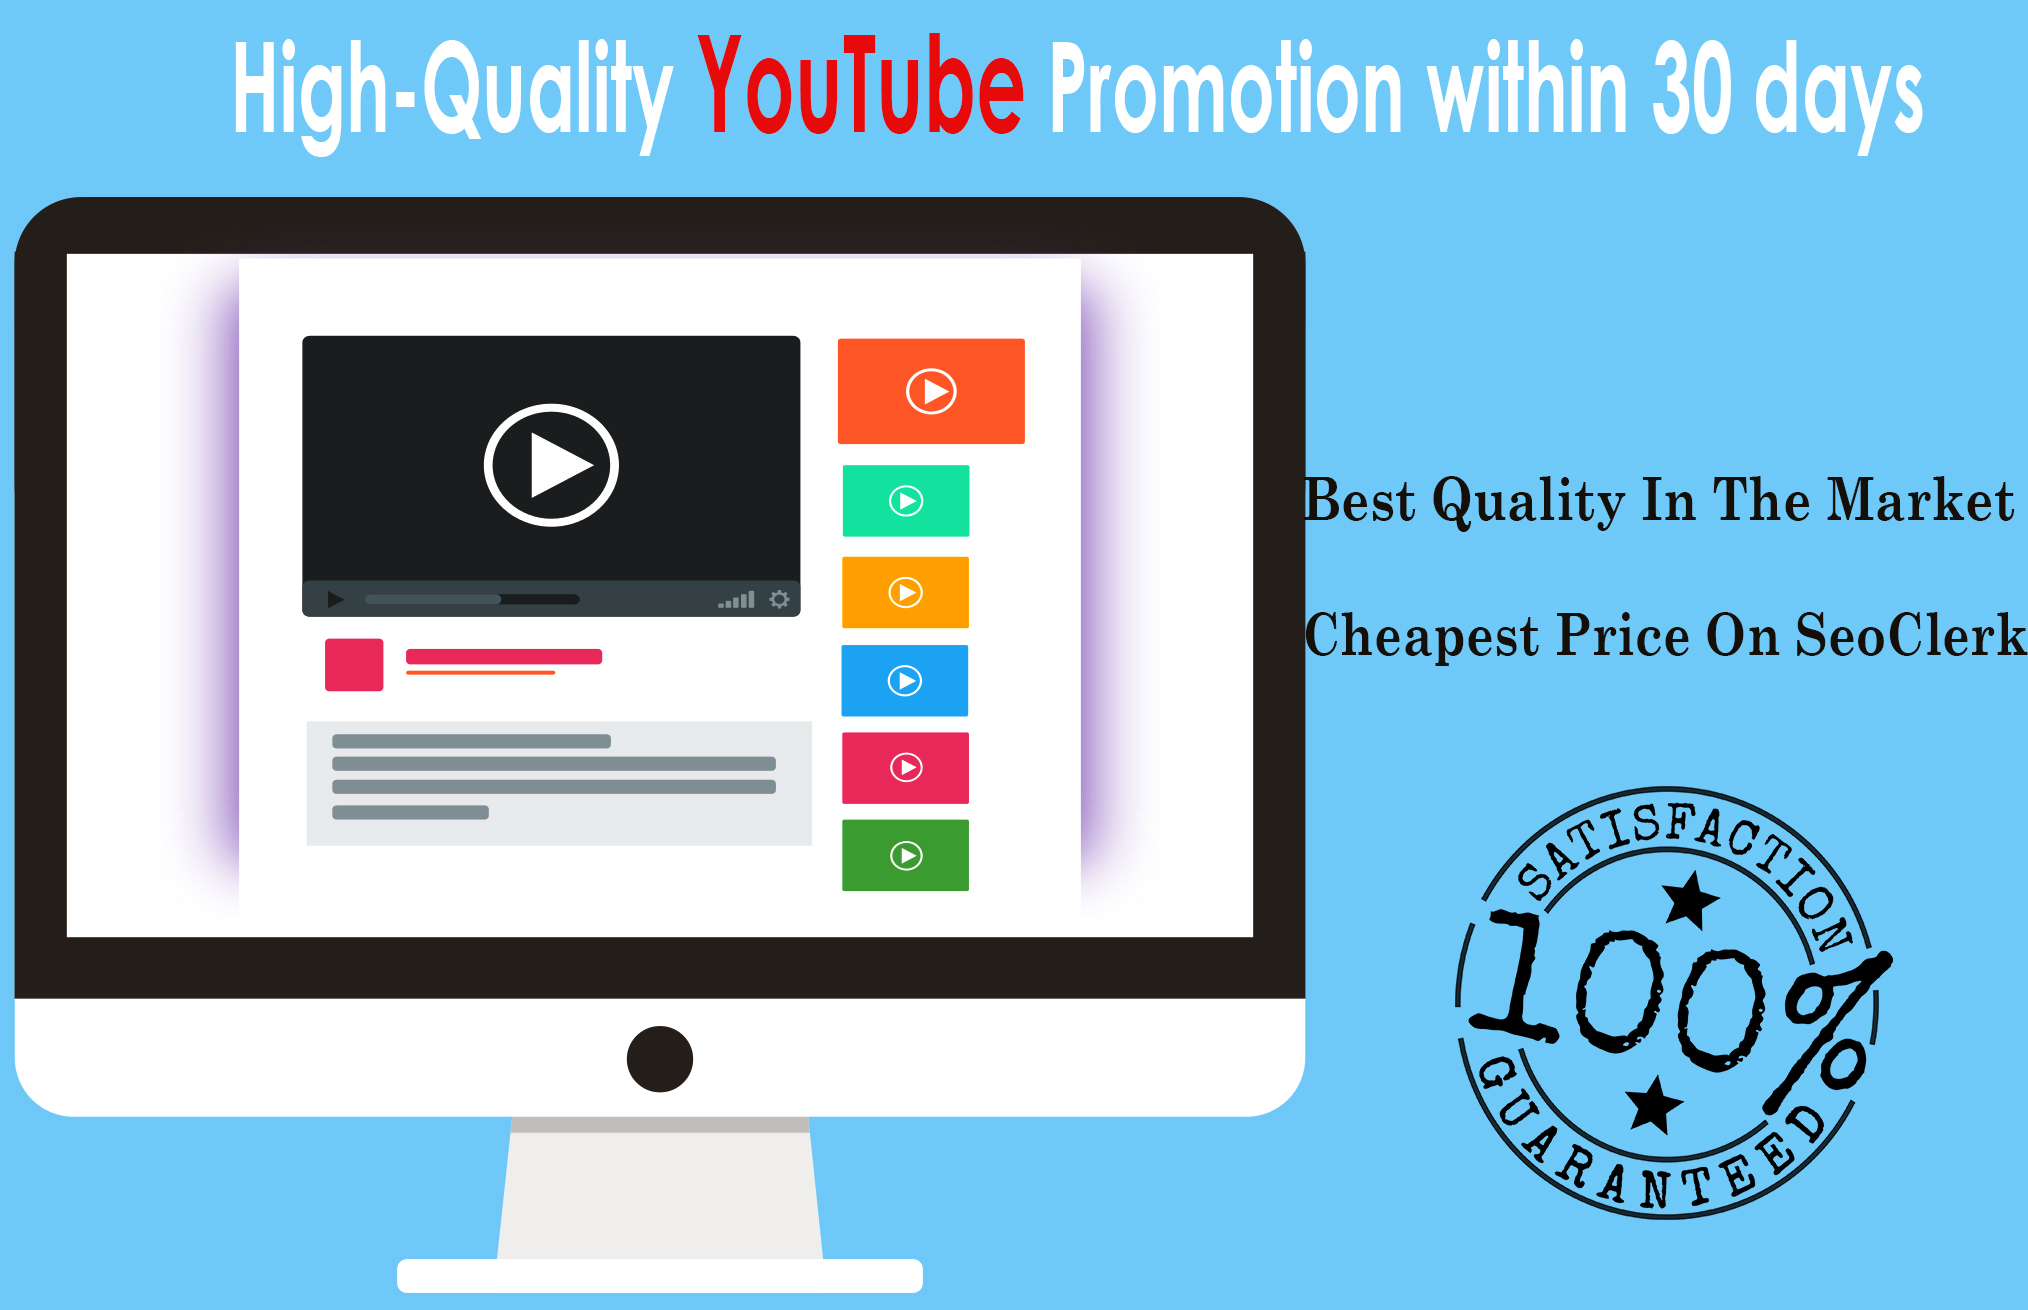 Manually Give High-Quality YouTube Promotion within 30 days